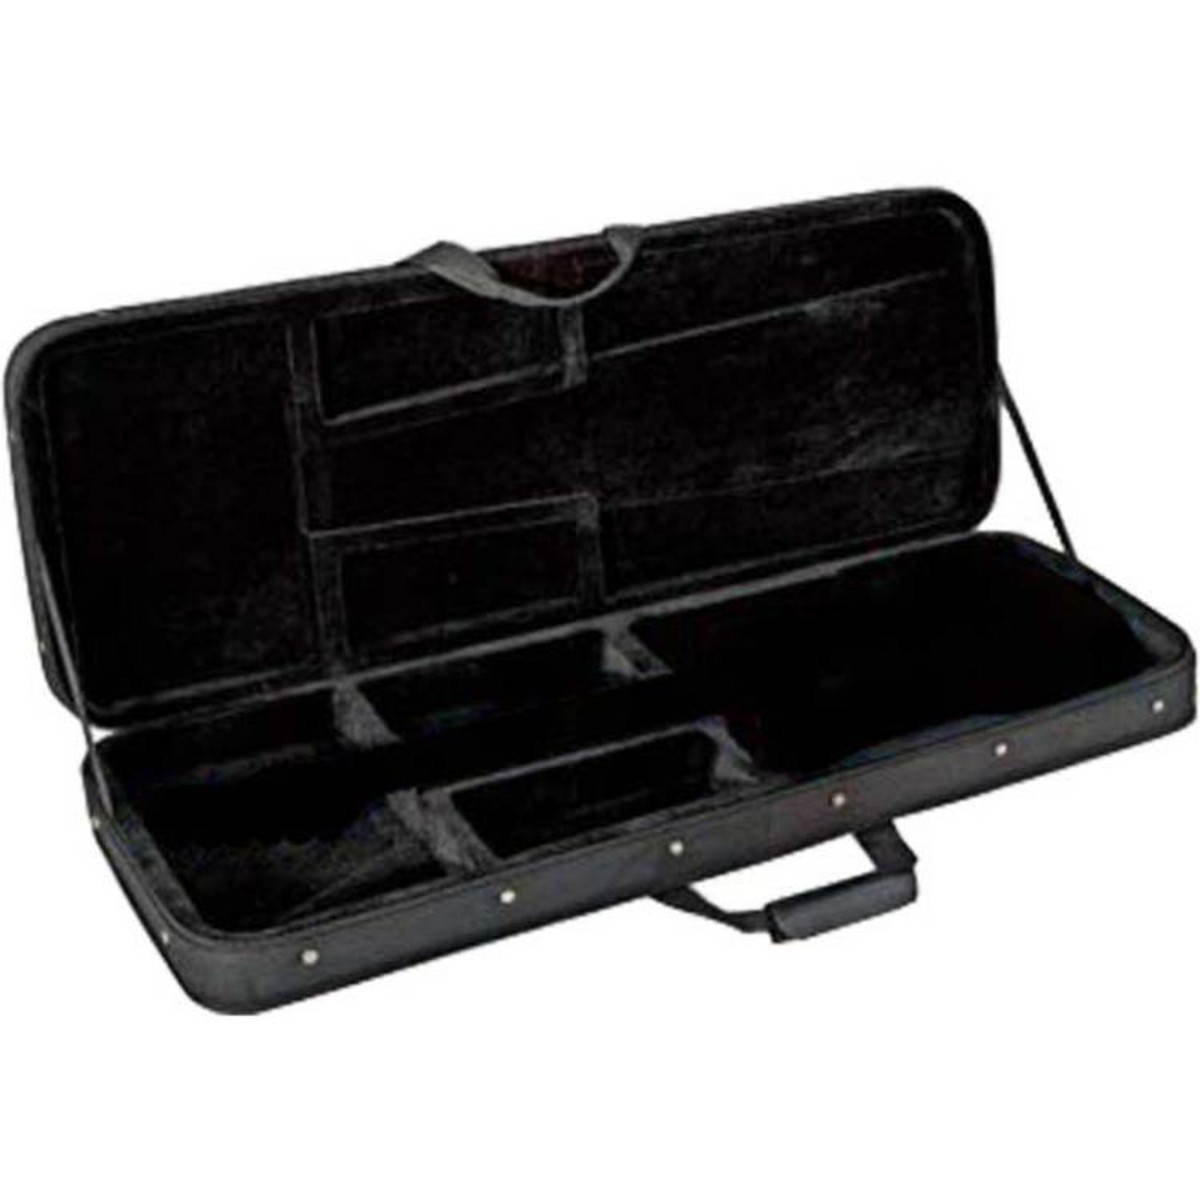 Click to view product details and reviews for Kinsman Hfb6 Hard Foam Bass Guitar Case.